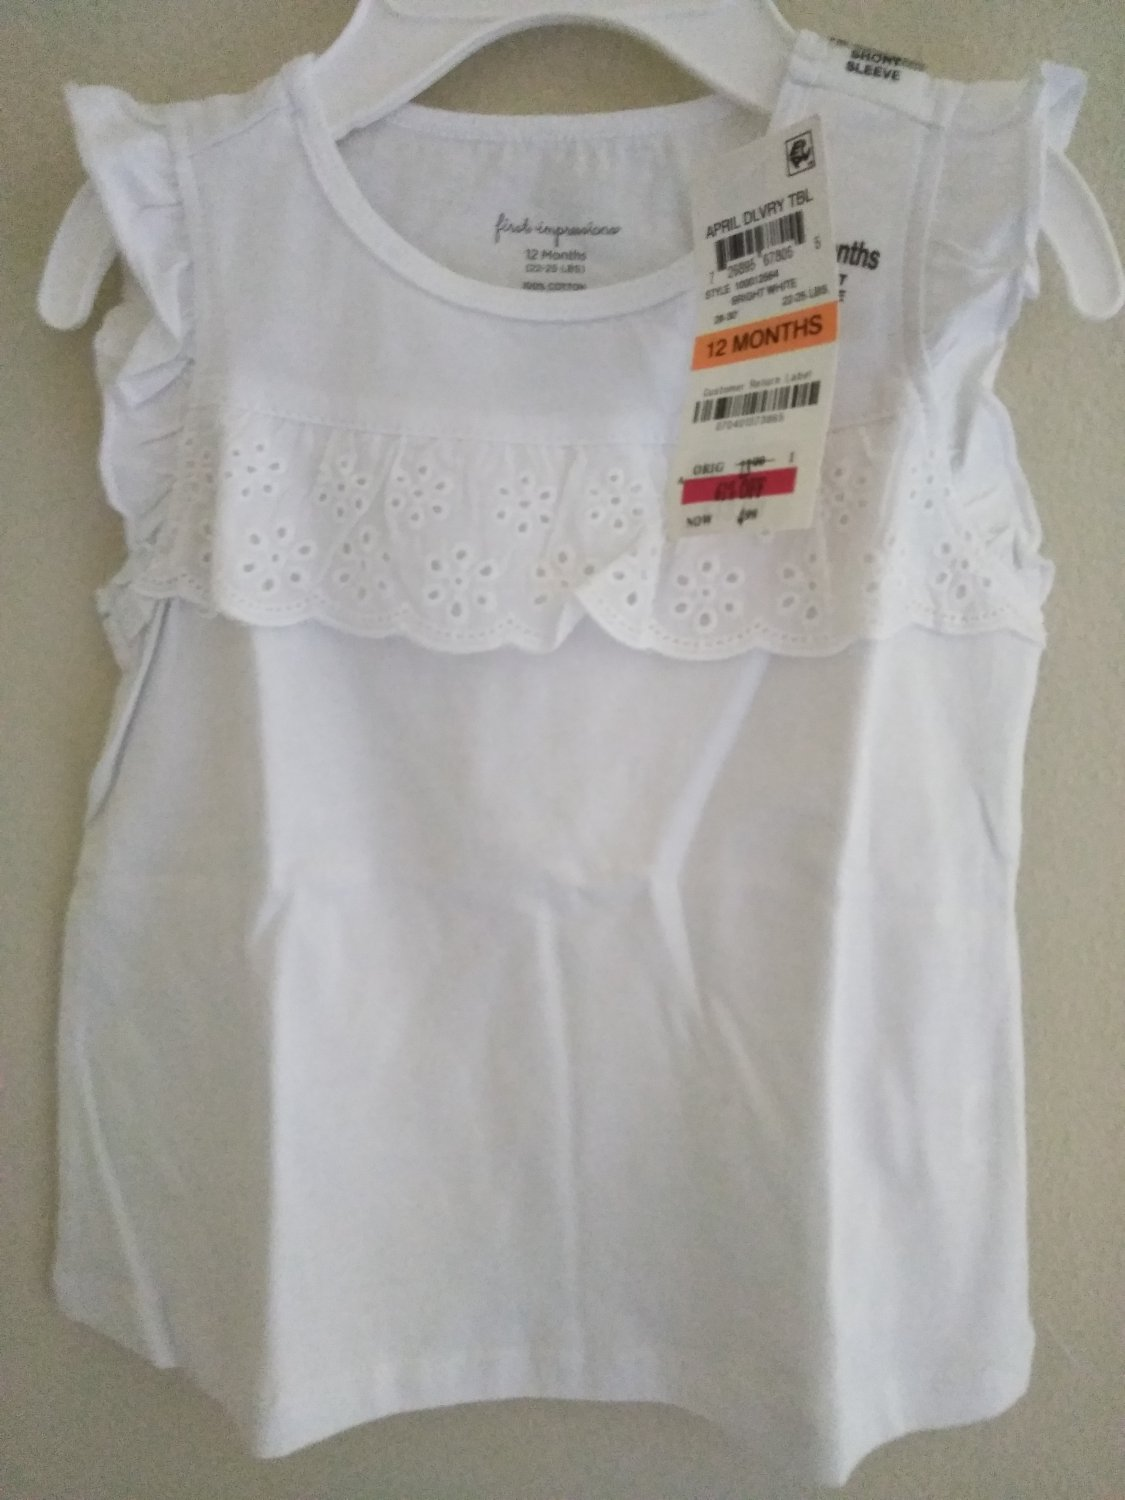 First Impression Baby Girl's White Short Sleeve Dress  3 - 24 Months